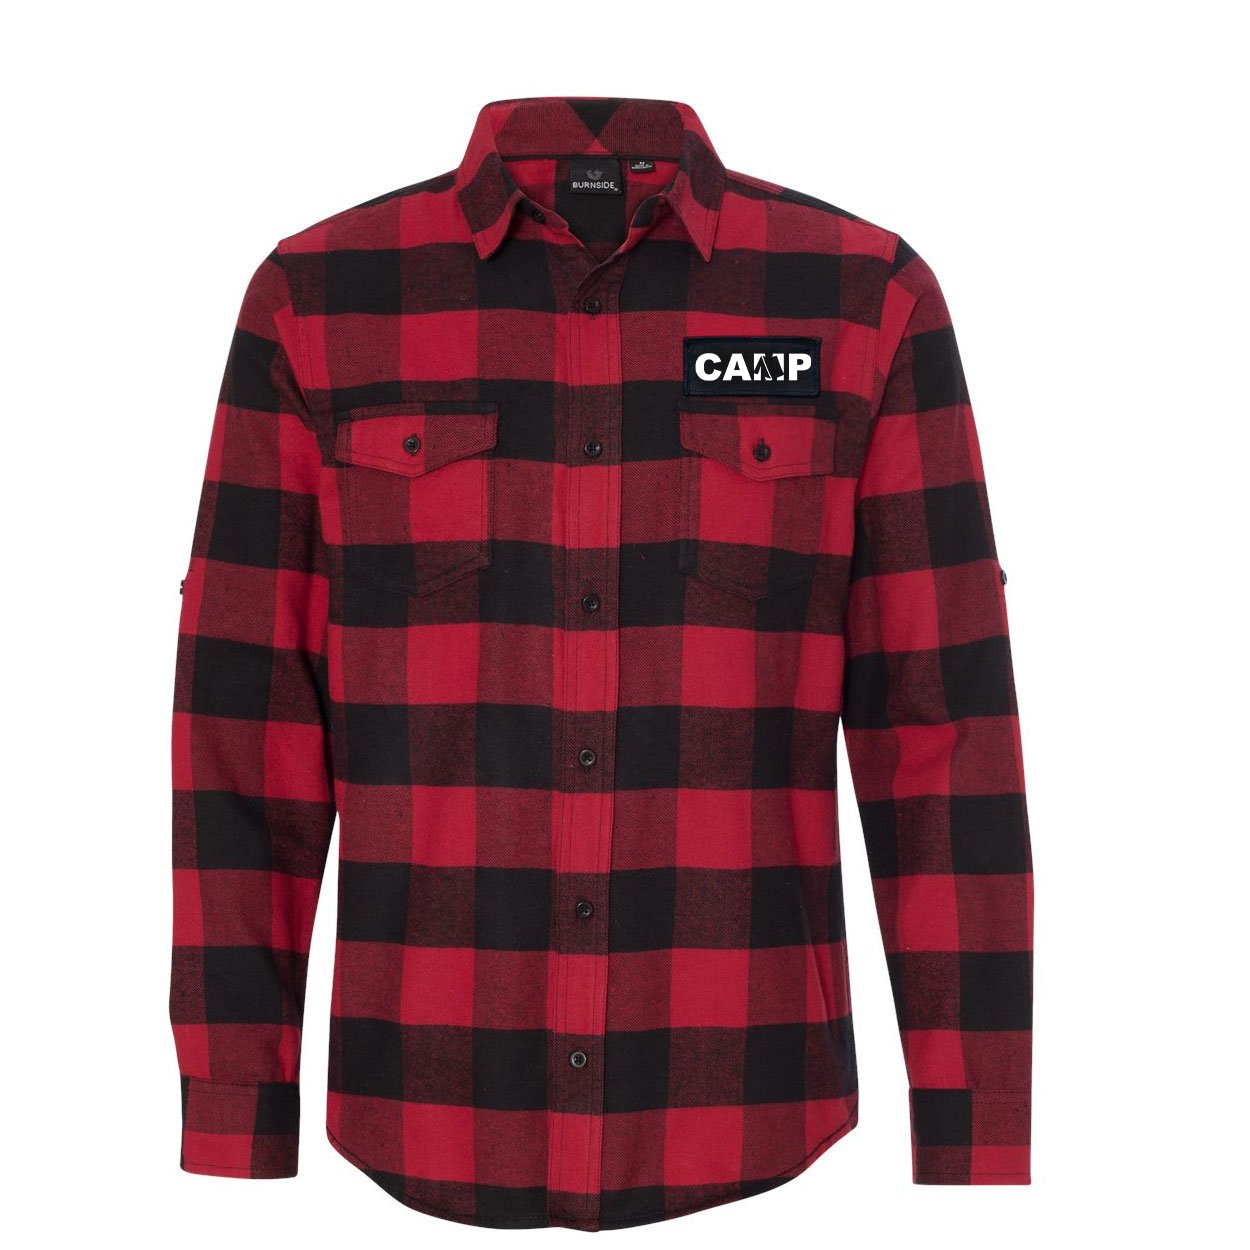 Camp Tent Logo Classic Unisex Long Sleeve Woven Patch Flannel Shirt Red/Black Buffalo (White Logo)